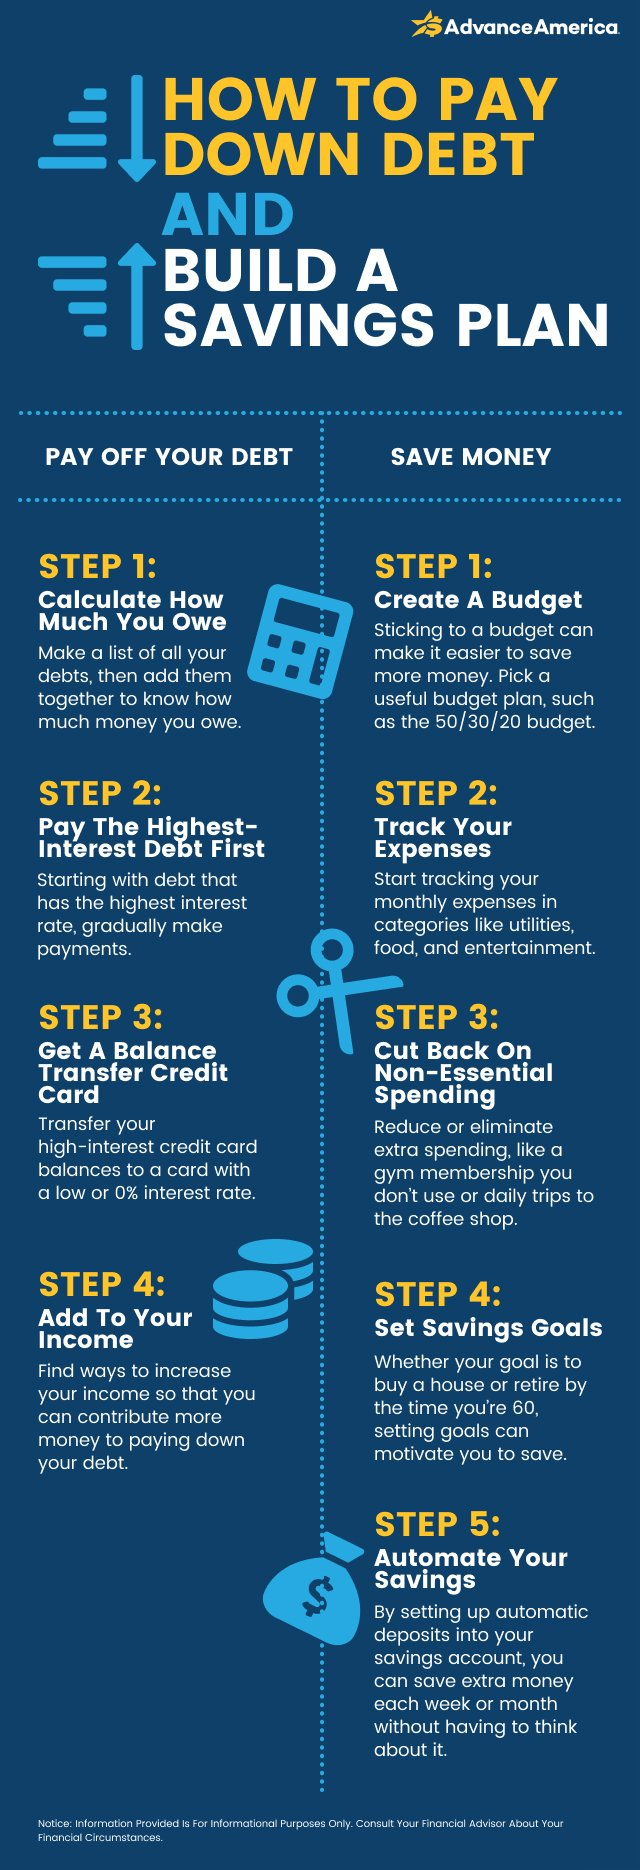 Pay down debt and build a savings plan